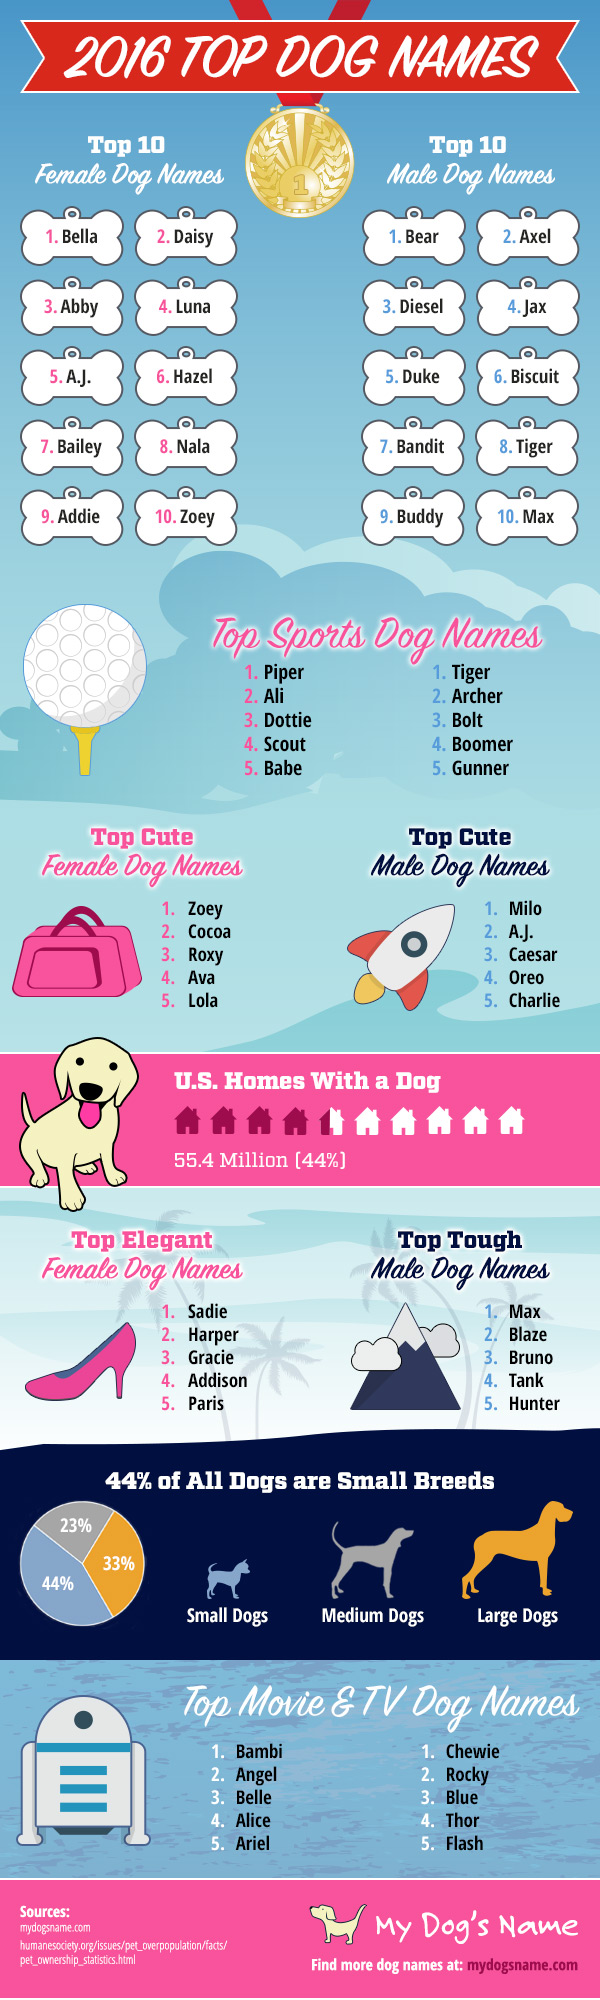 2016-dog-names-infographic